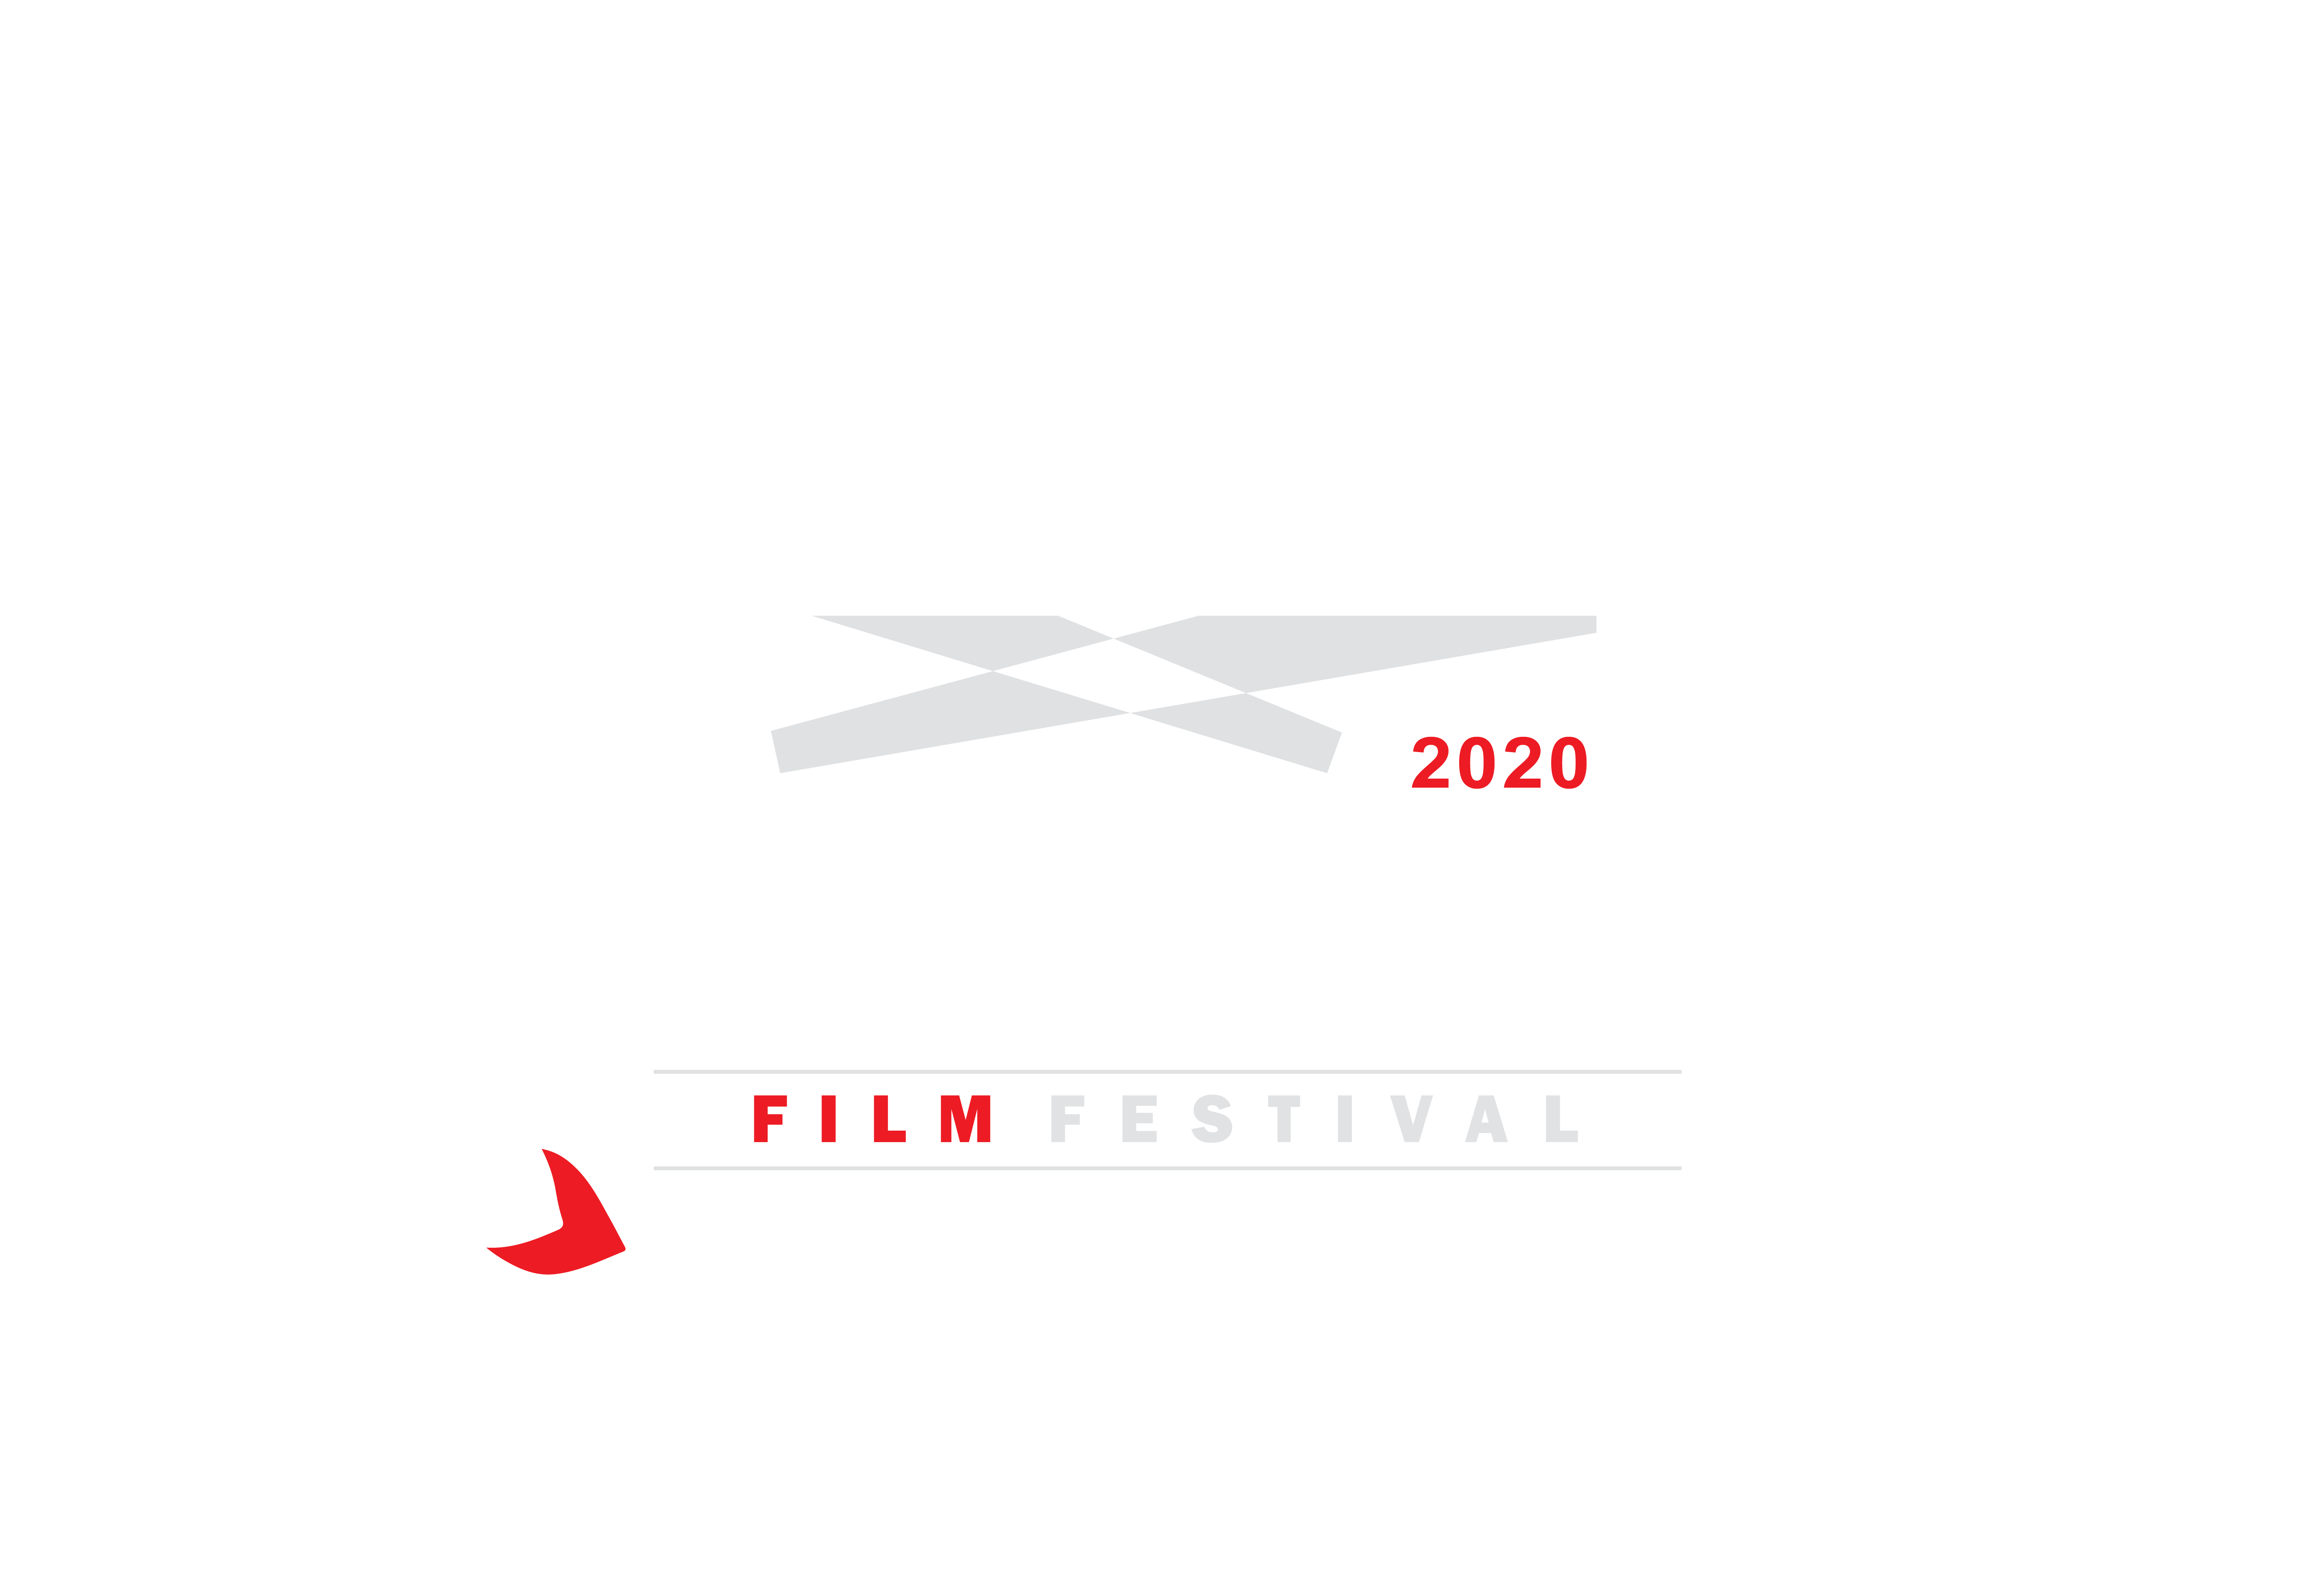 melbourne indie film festival 2020 official selection (2)